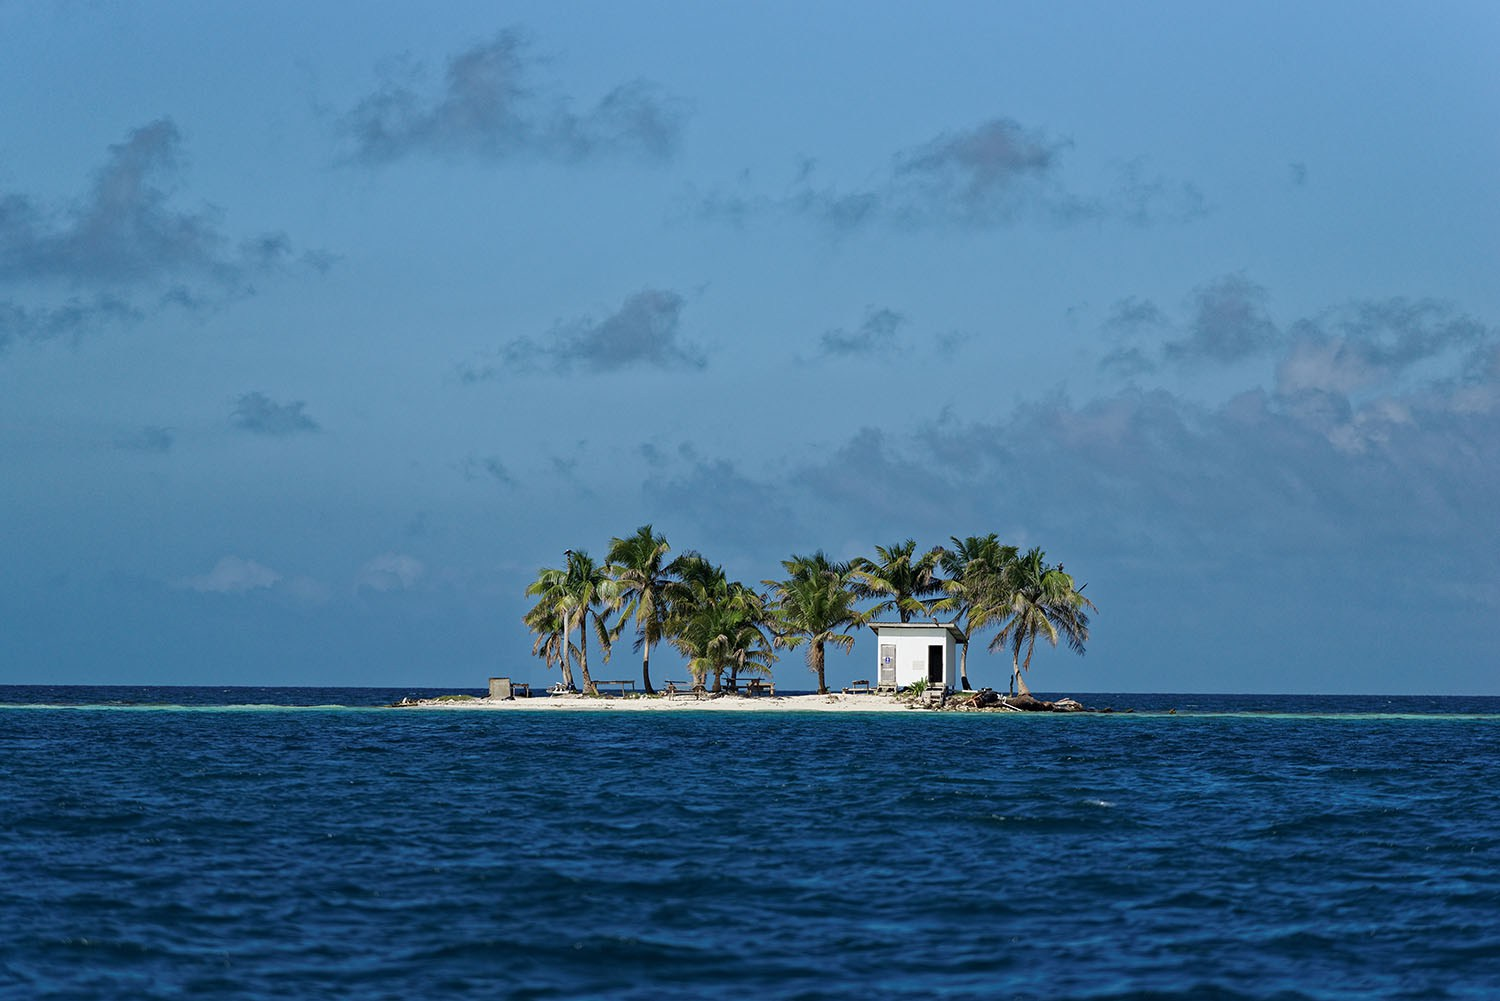 """500px Photo ID: 96179843 - Little """"Toilet island"""" in the middle of Caribbean sea (Belize, Placencia). It was the best office in my life! (office with open space ;-) )"""